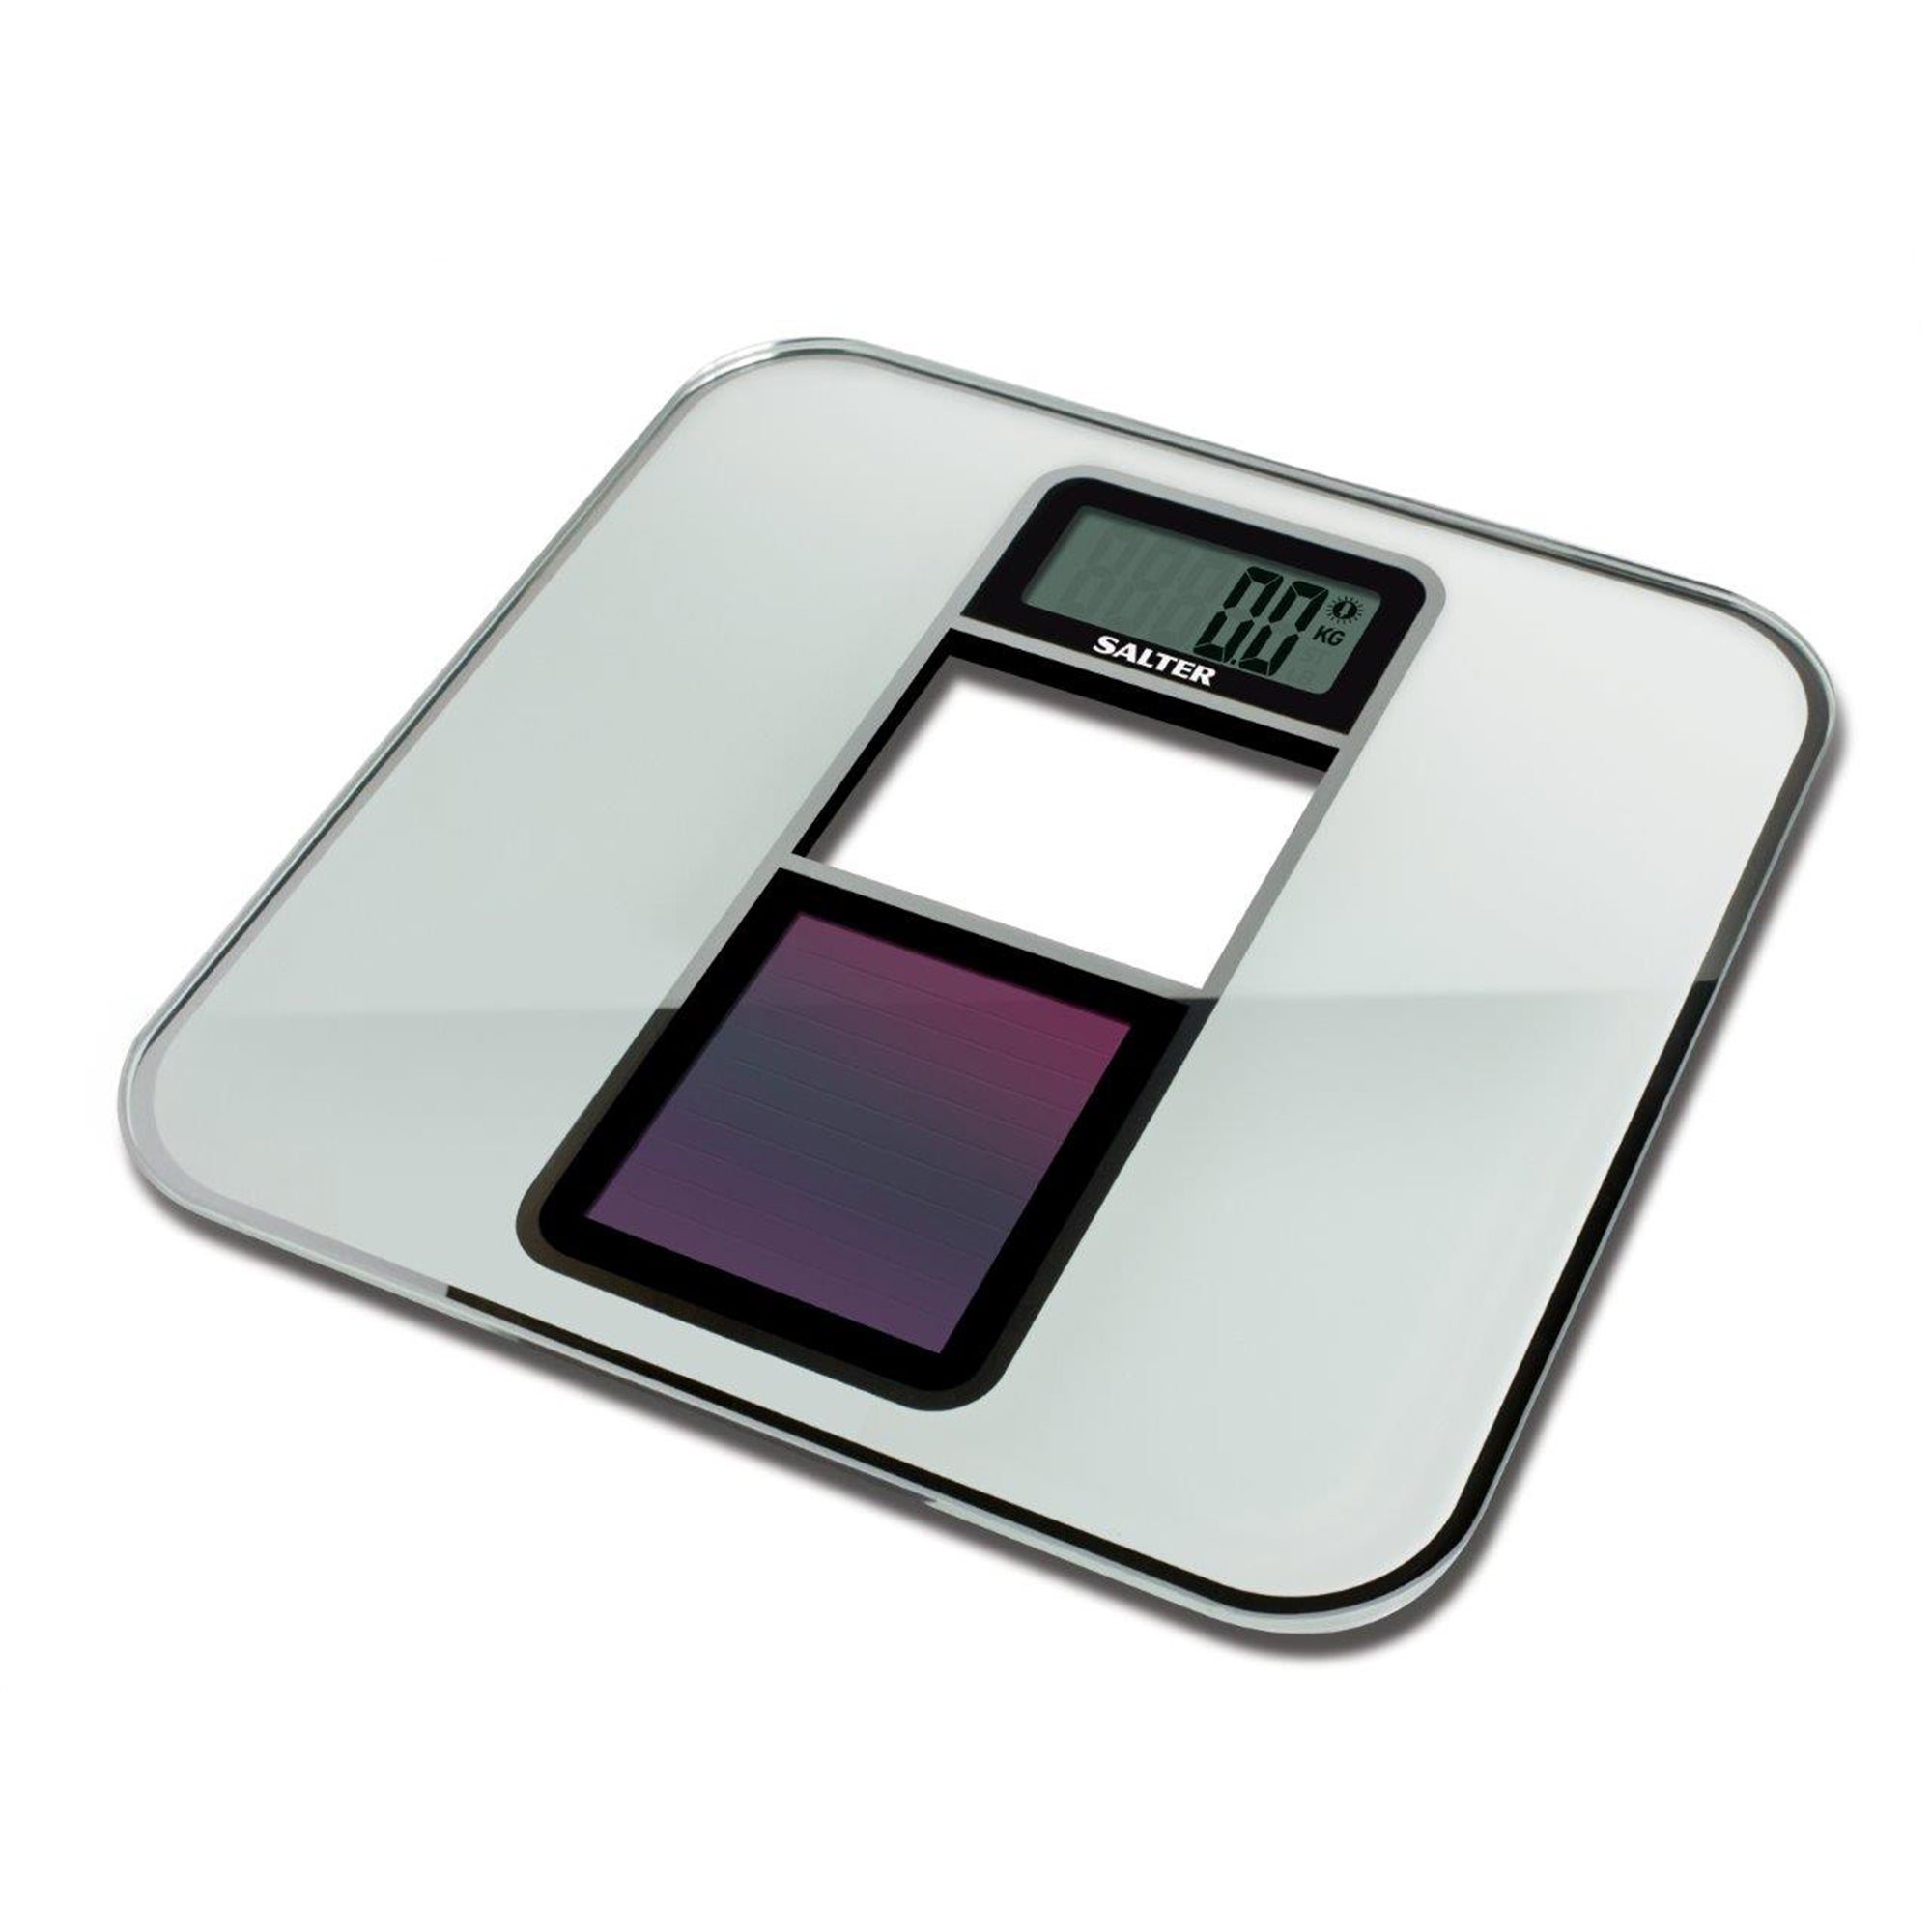 Salter Eco Electronic Scale White